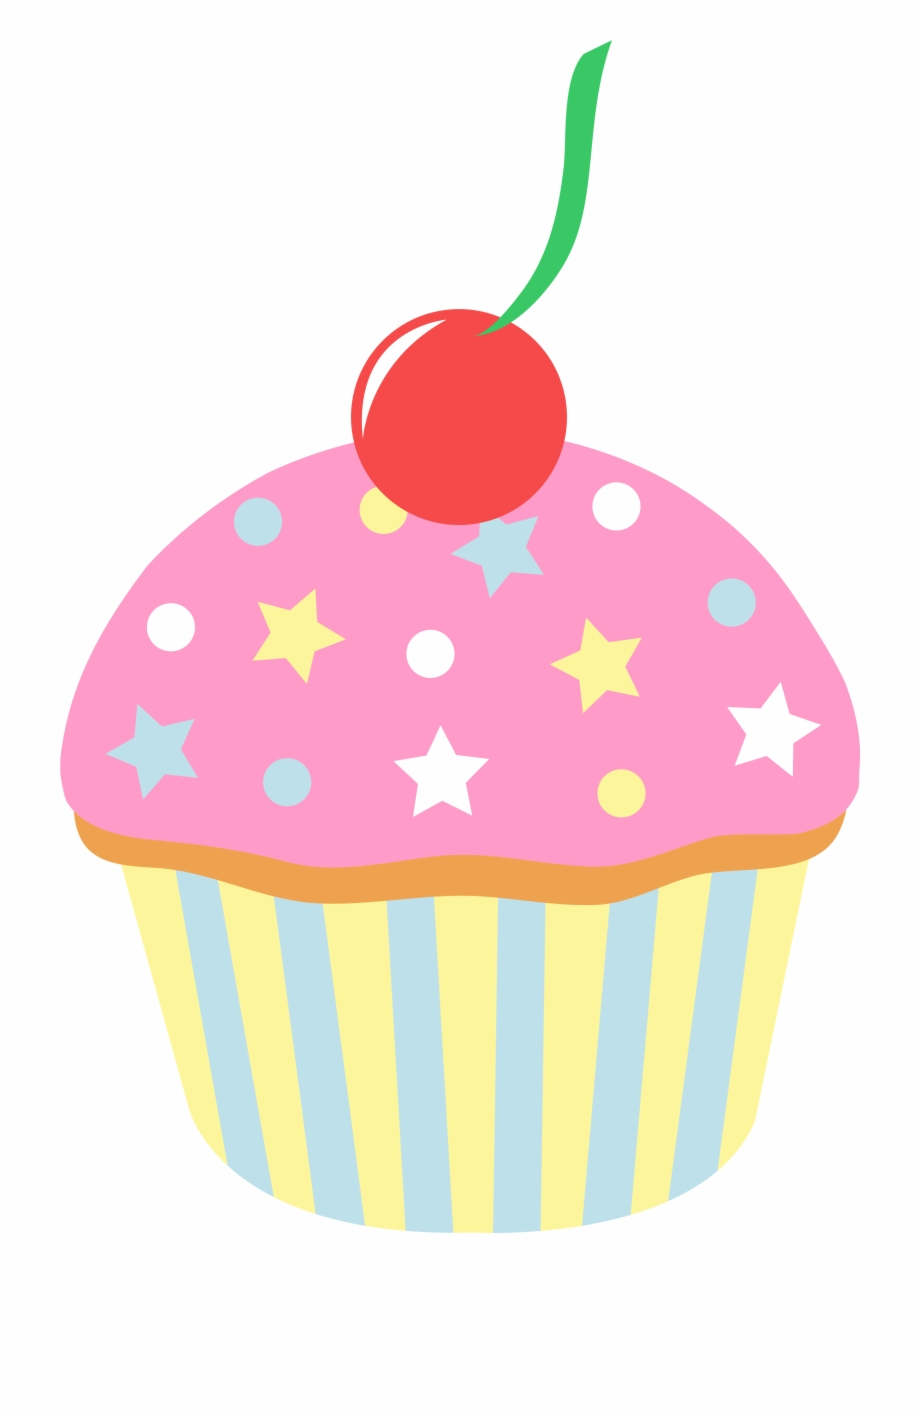 Cupcakes white icing with red sprinkles clipart image free download Vector Black And White Library Cupcake With Sprinkles - Cartoon ... image free download